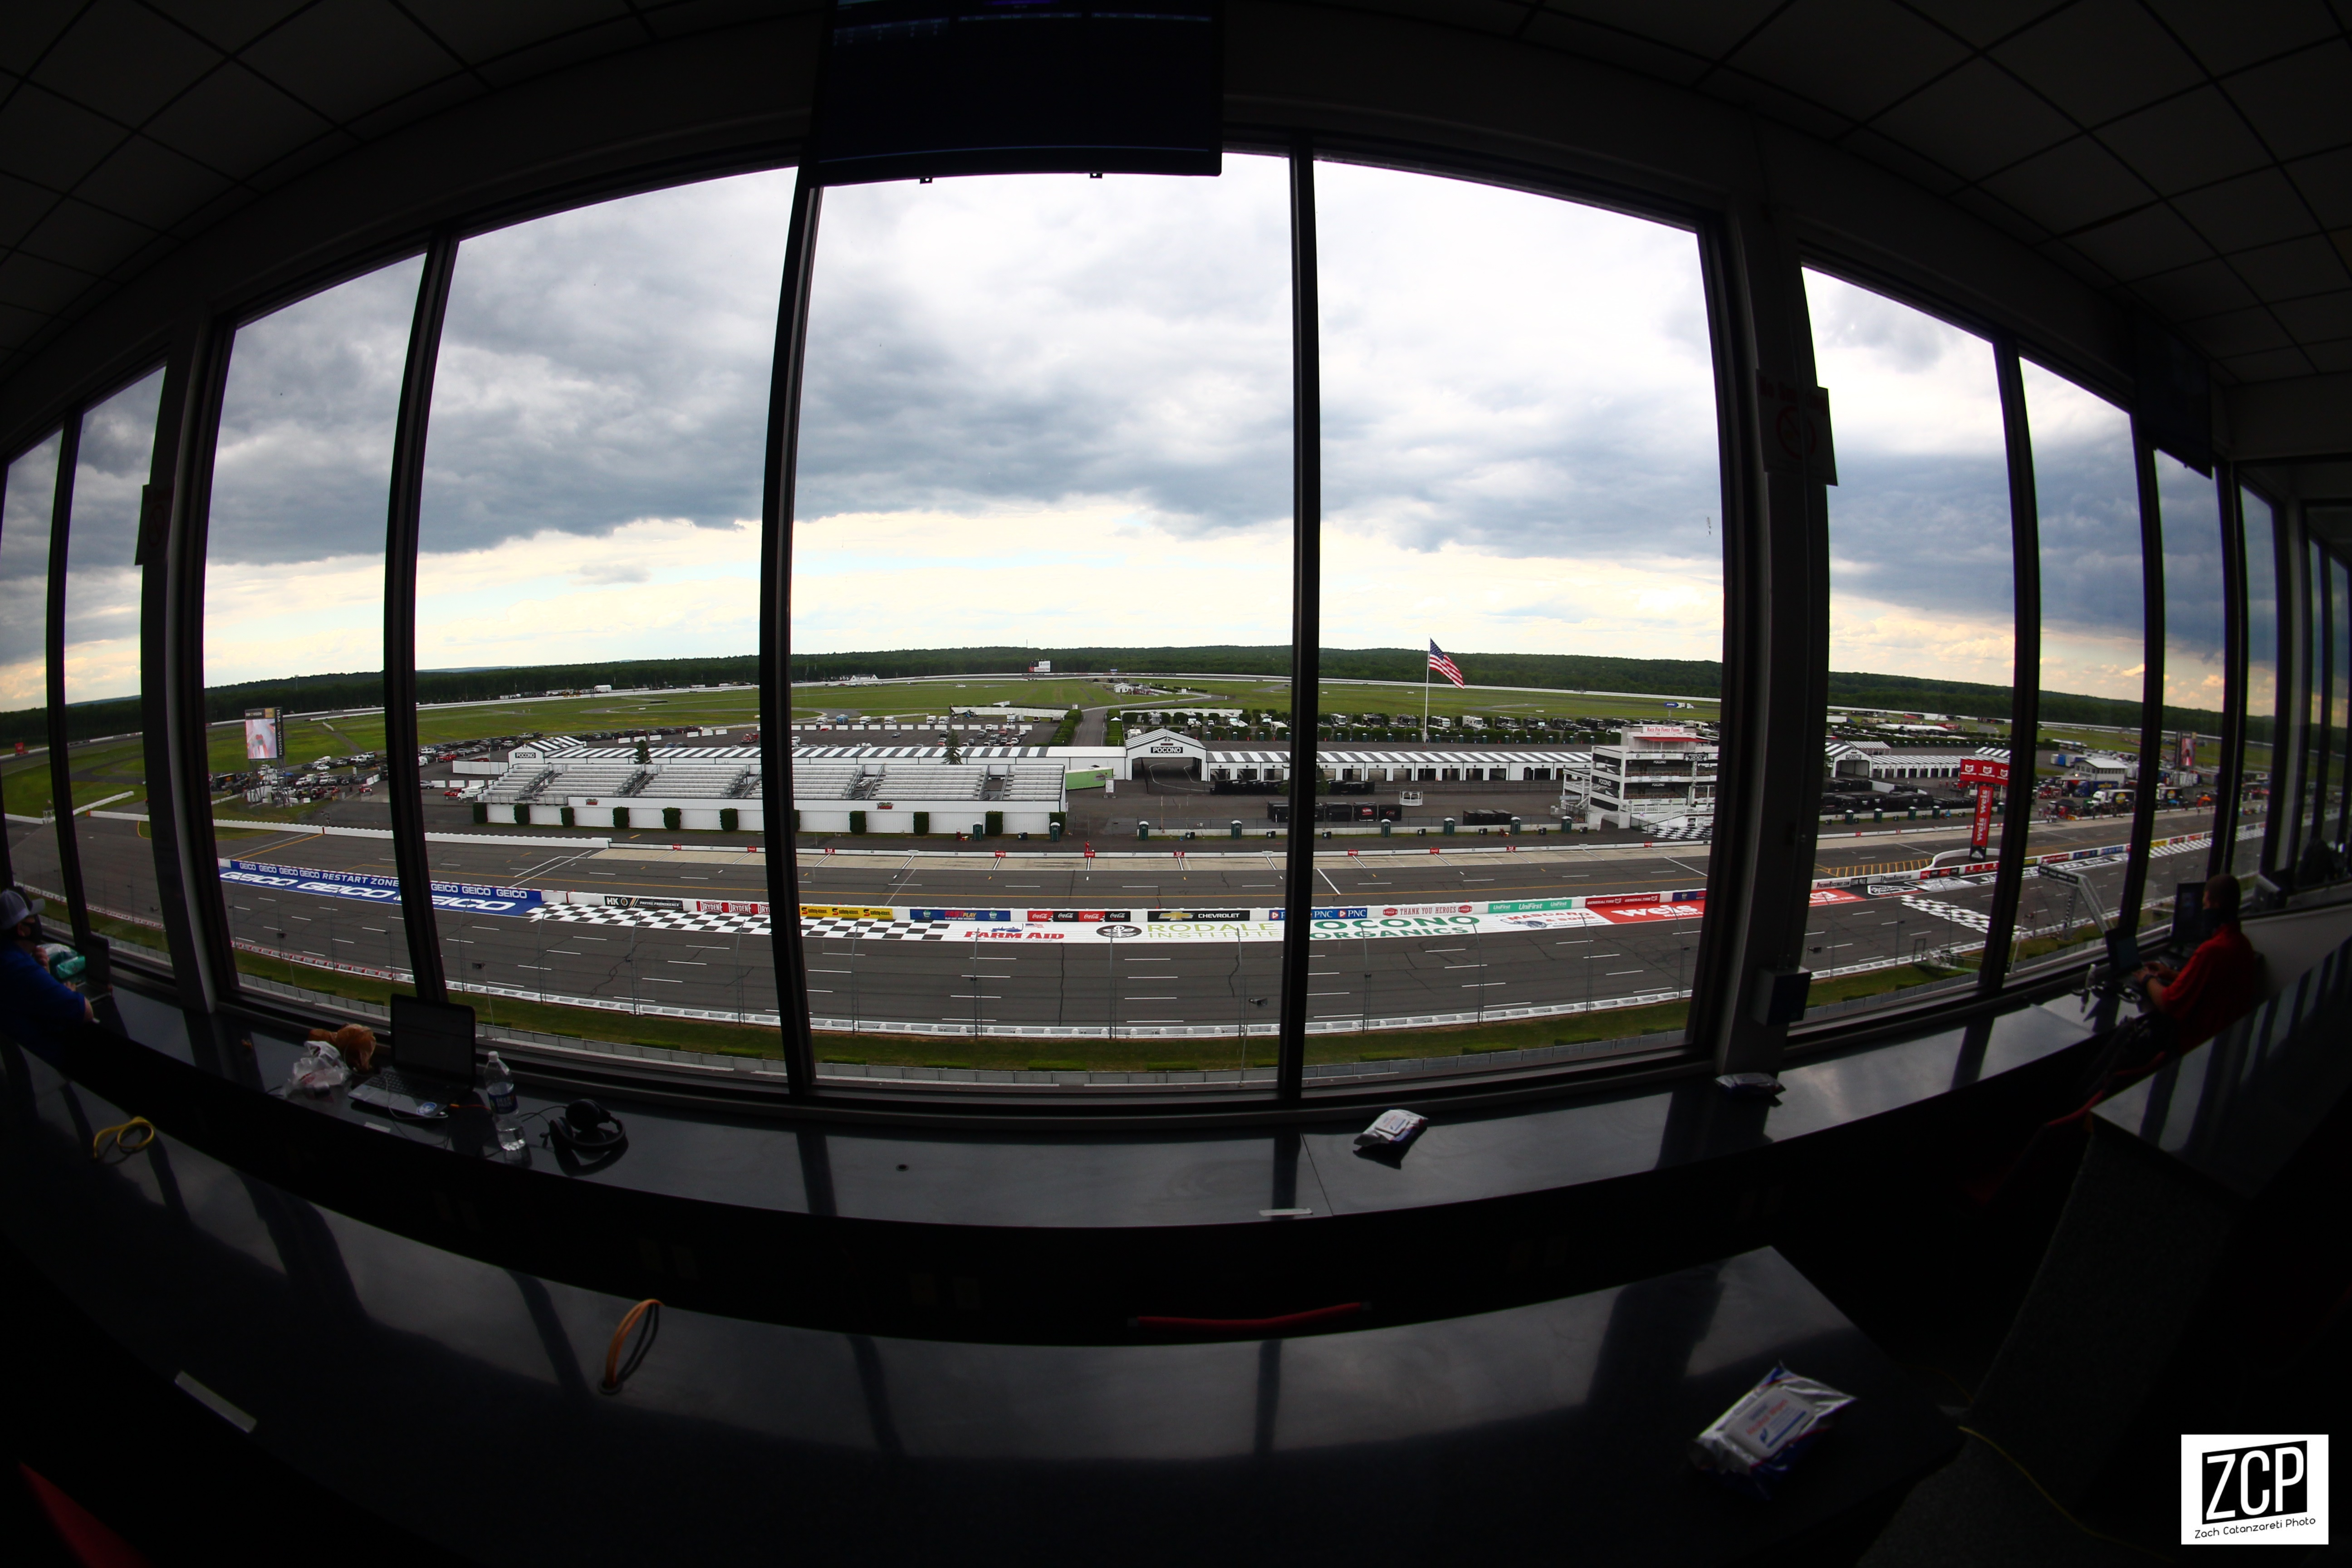 Fish-eye lense shot of window looking down at racetrack.